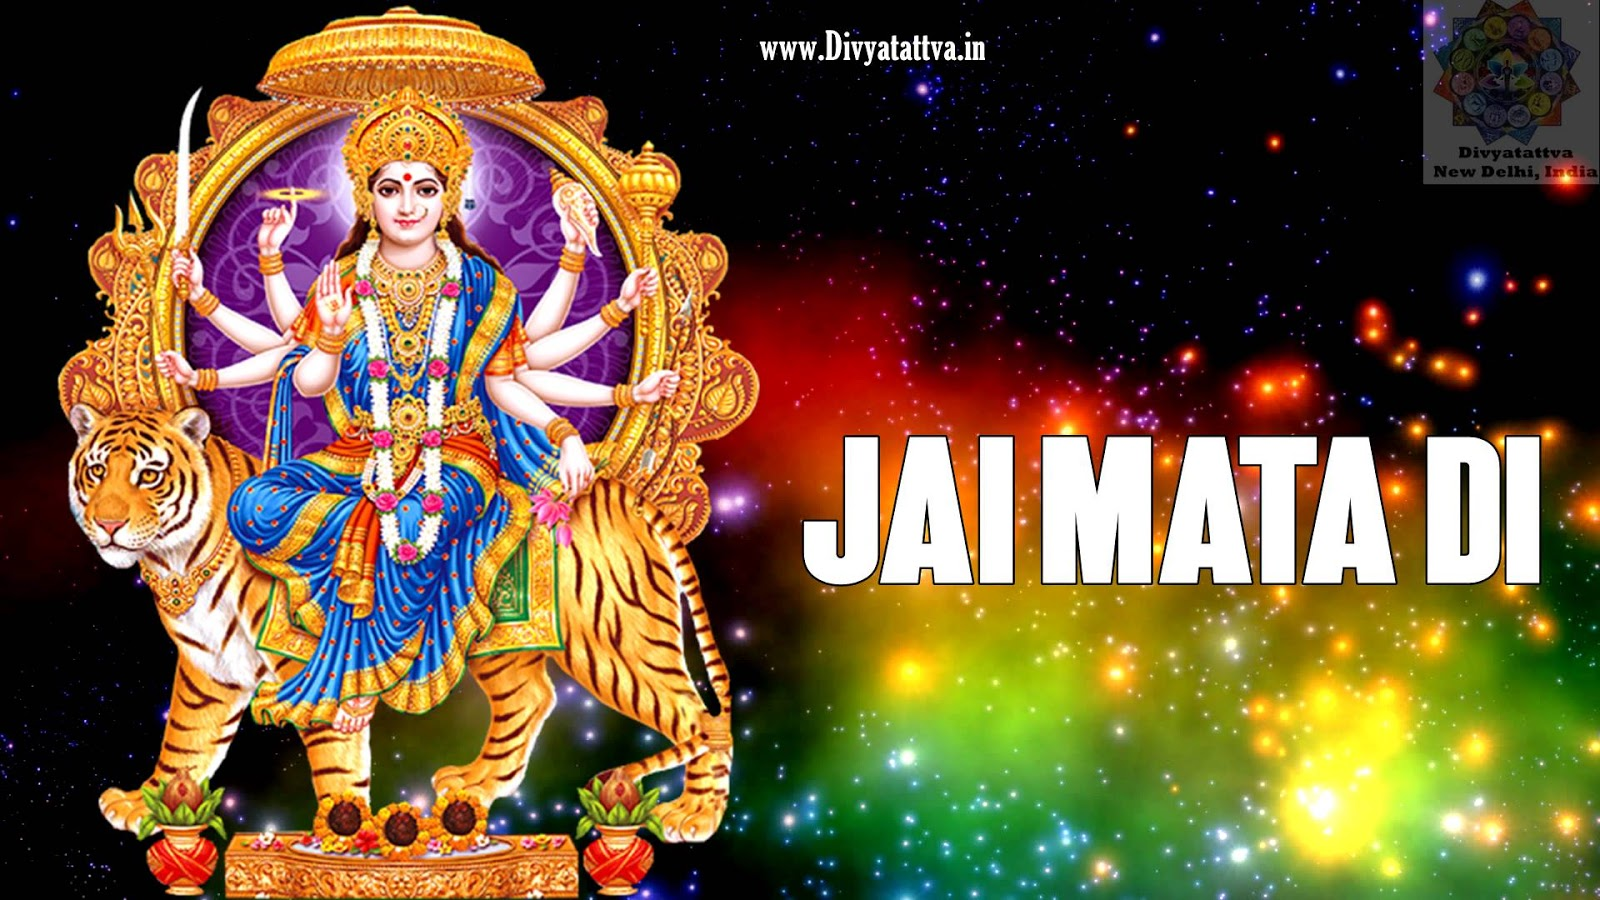 Devi Durga HD Wallpapers Jai Mata Di Background Photos Maa Wallpaper Full Size Hd Backgrounds Images For Free Download